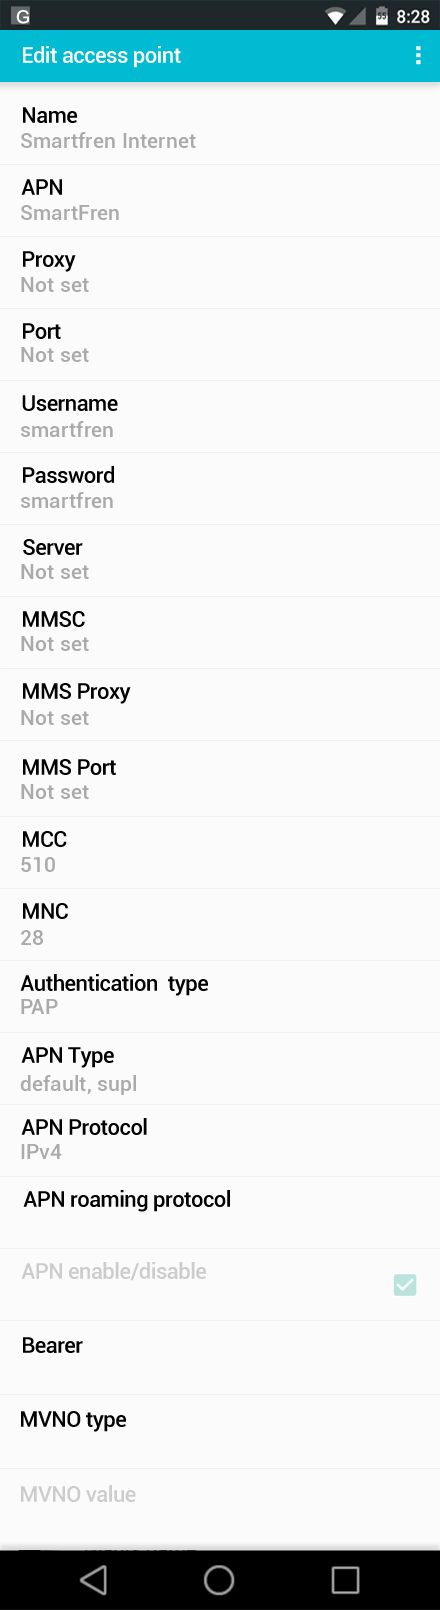 Smartfren Internet APN settings for Android screenshot